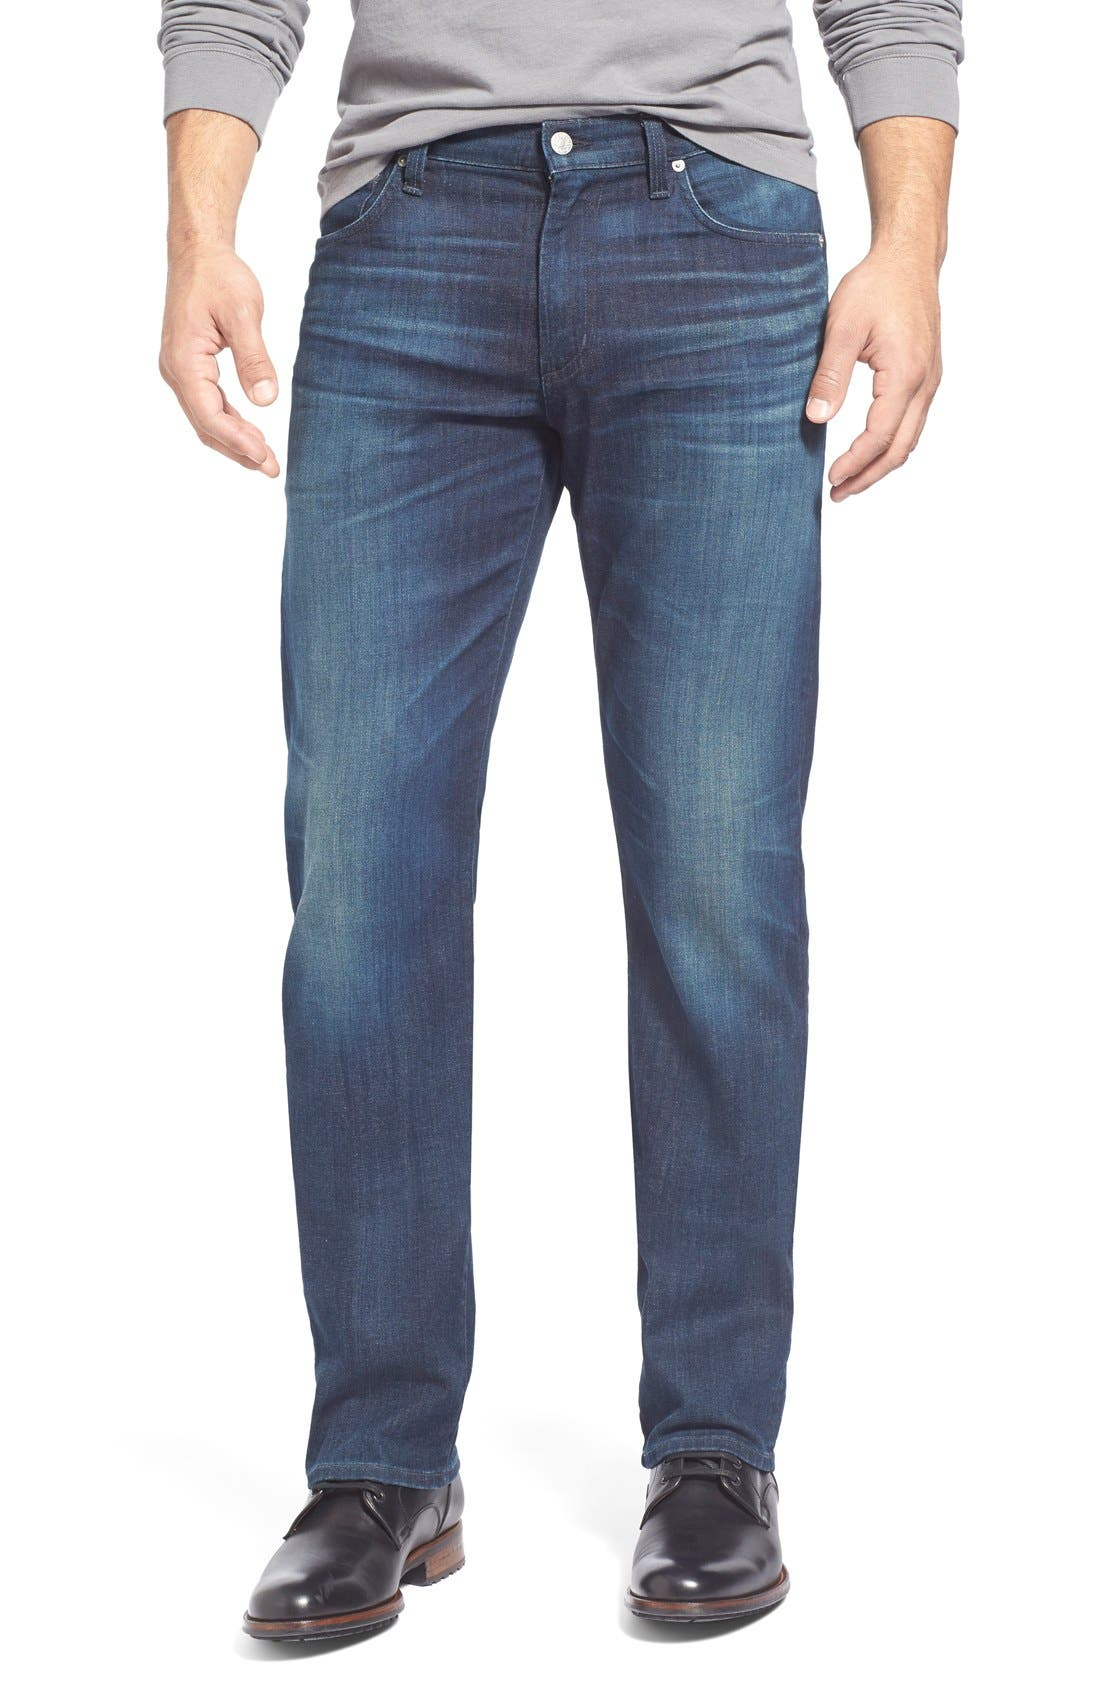 Main Image - Citizens of Humanity 'Sid Classic' Straight Leg Jeans (Marshall)